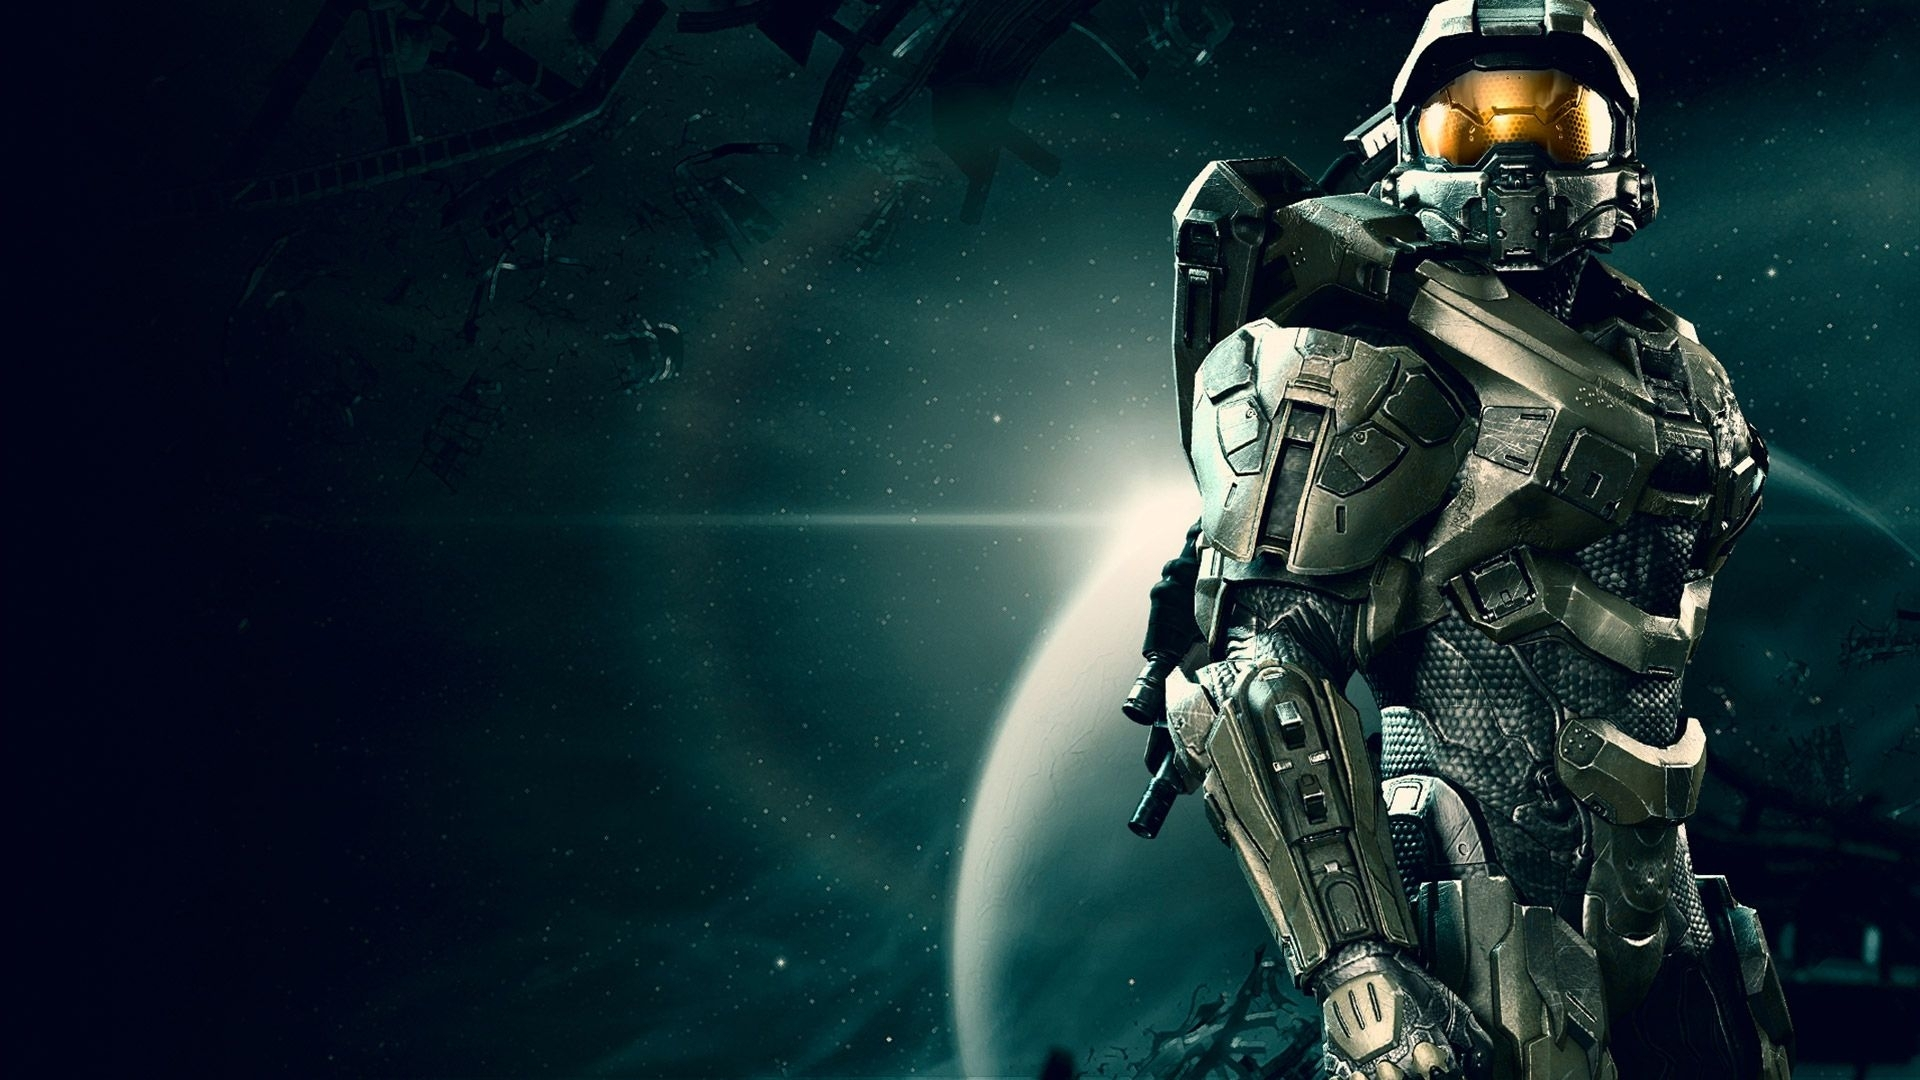 10 Top Master Chief Wallpaper Hd FULL HD 1920×1080 For PC Background